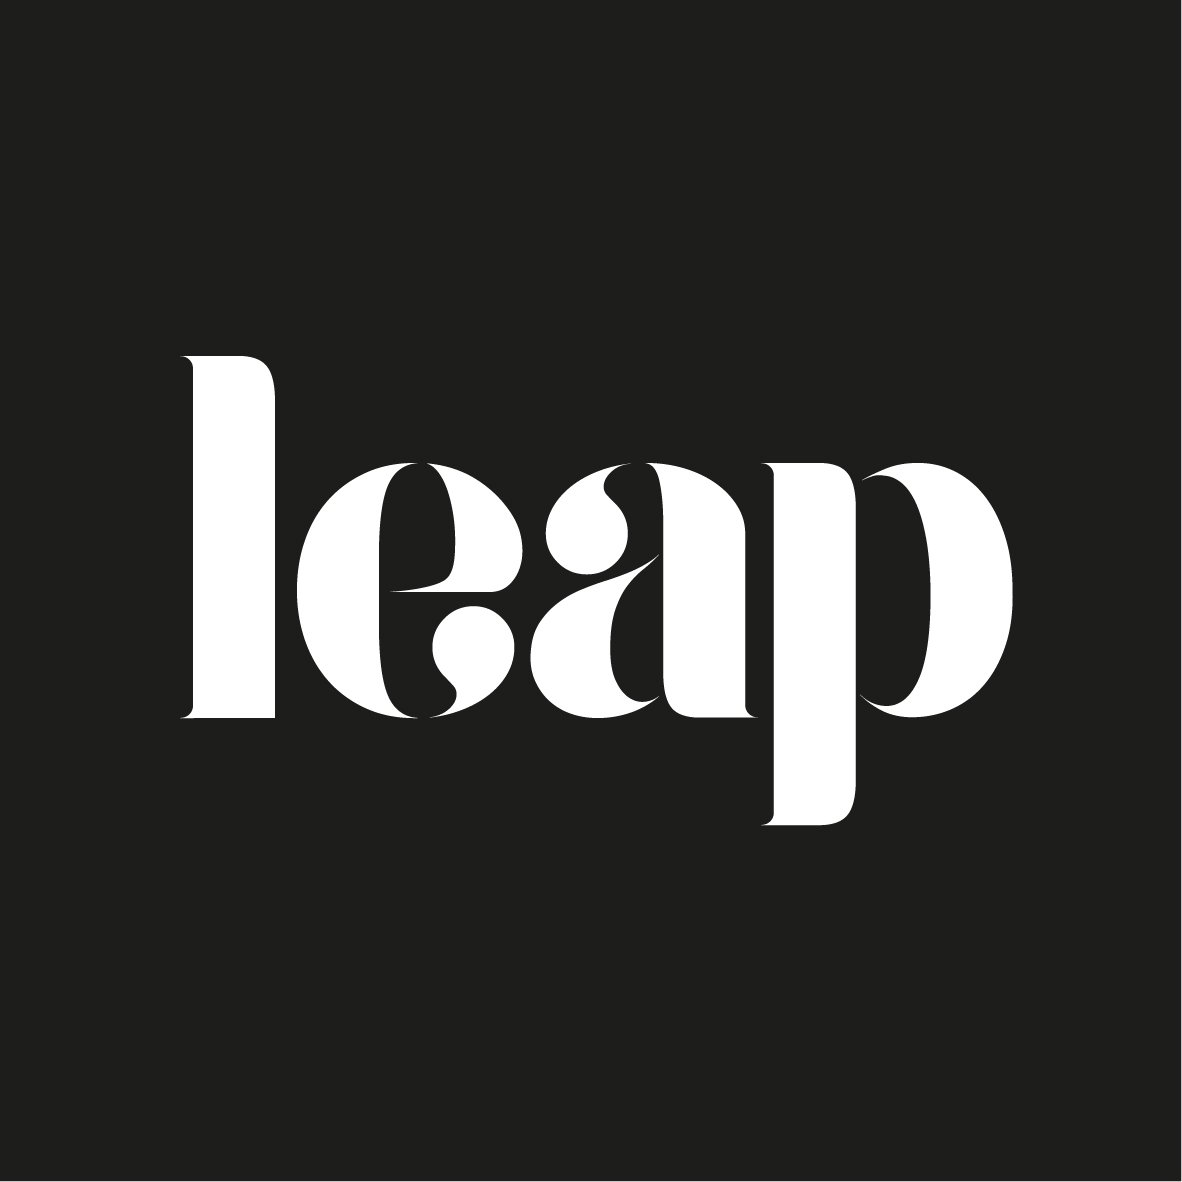 leap design leapdesign1 twitter